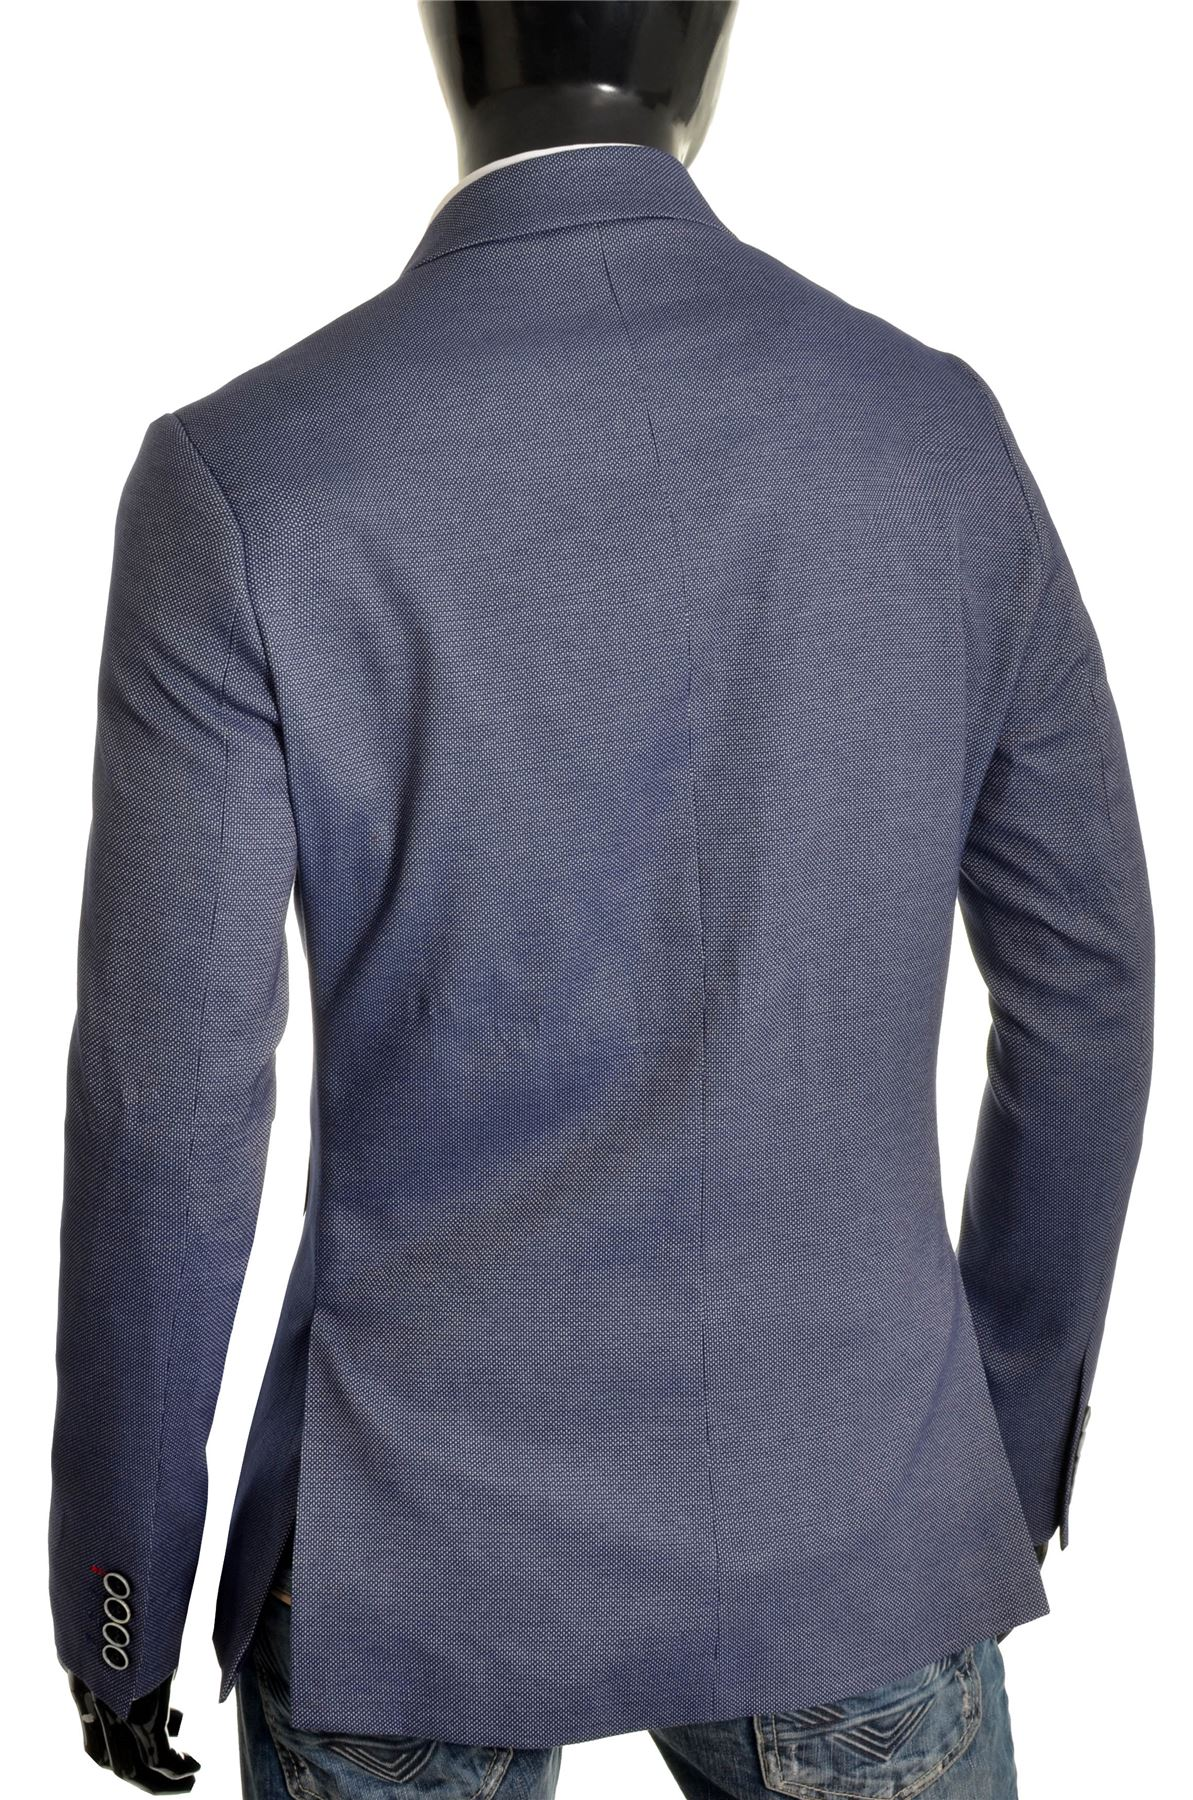 Men-039-s-Classic-Design-Blazer-Jacket-Blue-Casual-Contrast-Finish-Slim-Soft-Cotton thumbnail 8